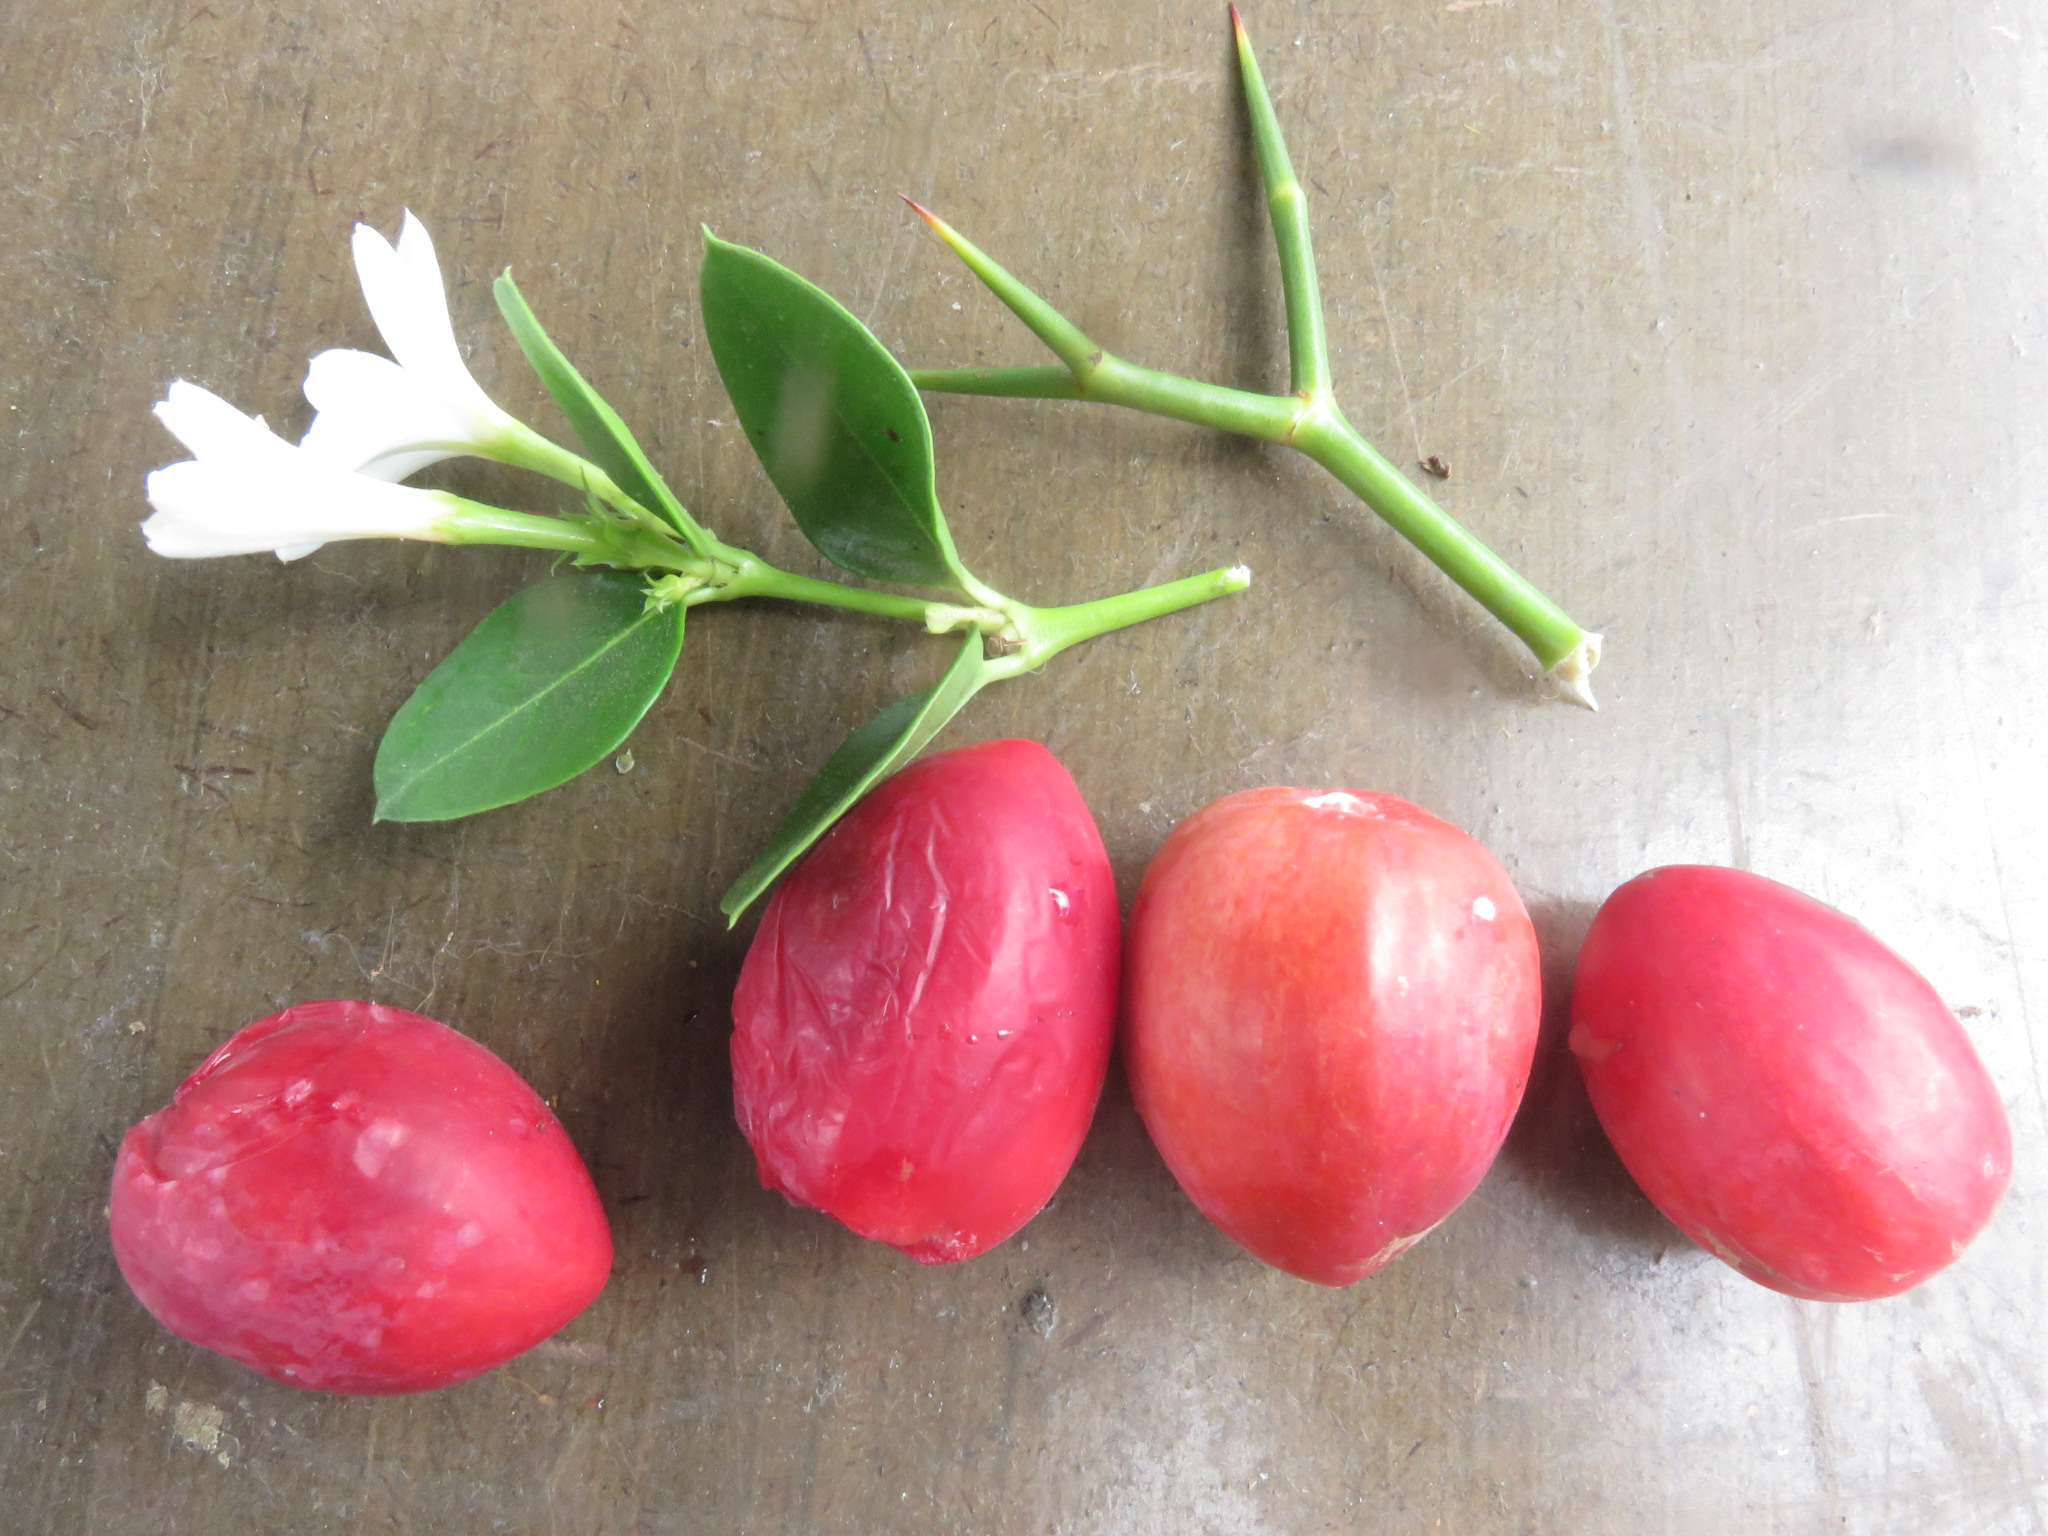 The numnum or Carissa bispinosa, has burning thorns, perfumed flowers and delicious, versatile anti oxidant rich fruit.